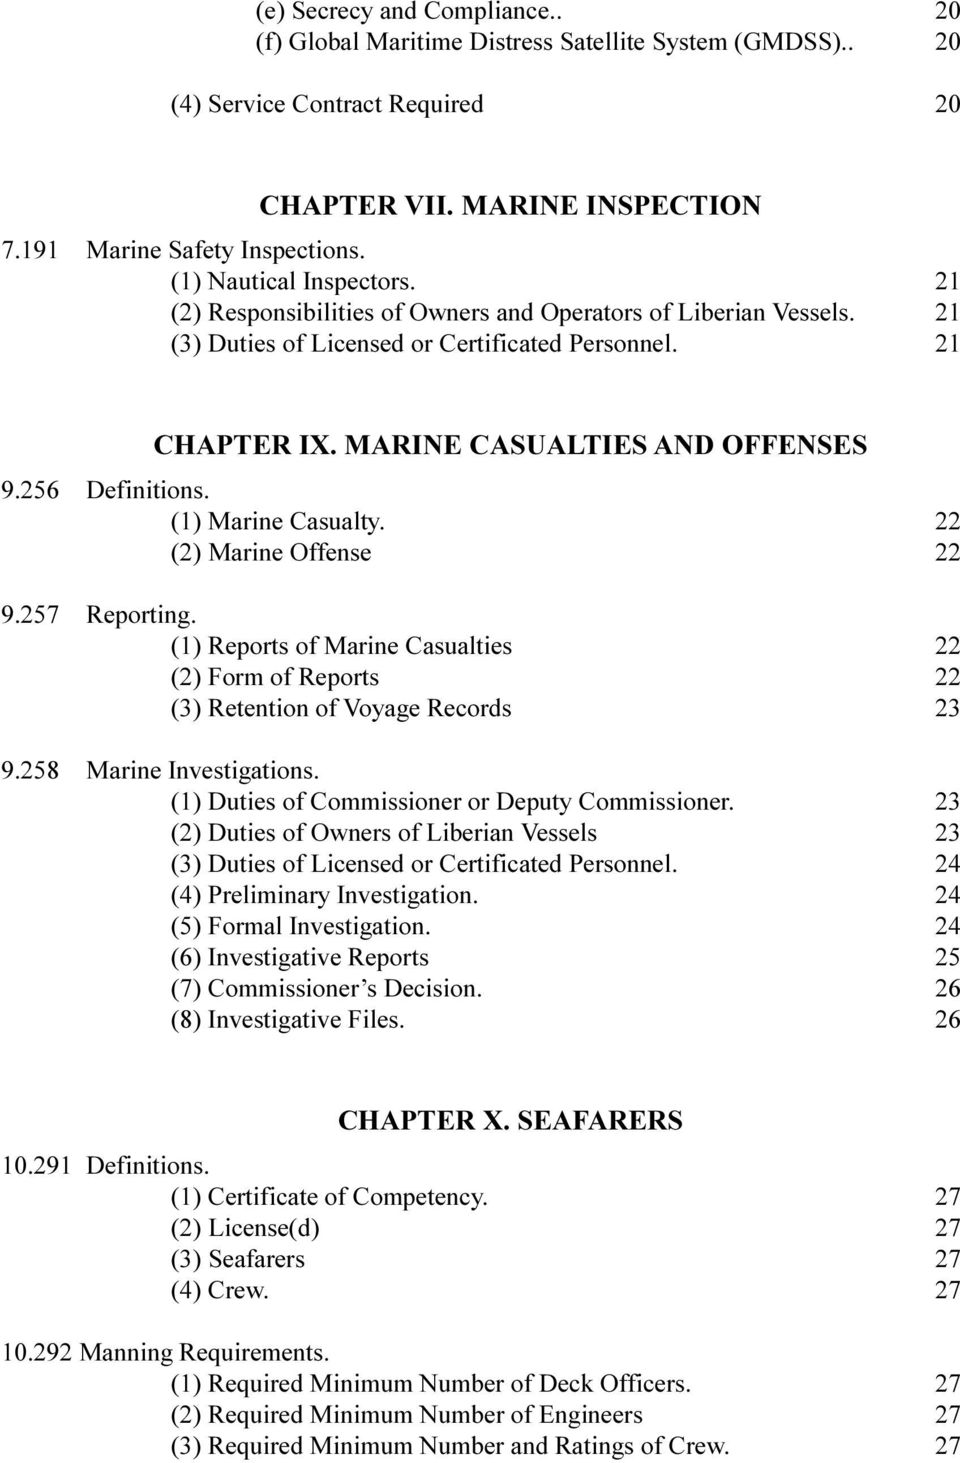 256 Definitions. (1) Marine Casualty. 22 (2) Marine Offense 22 9.257 Reporting. (1) Reports of Marine Casualties 22 (2) Form of Reports 22 (3) Retention of Voyage Records 23 9.